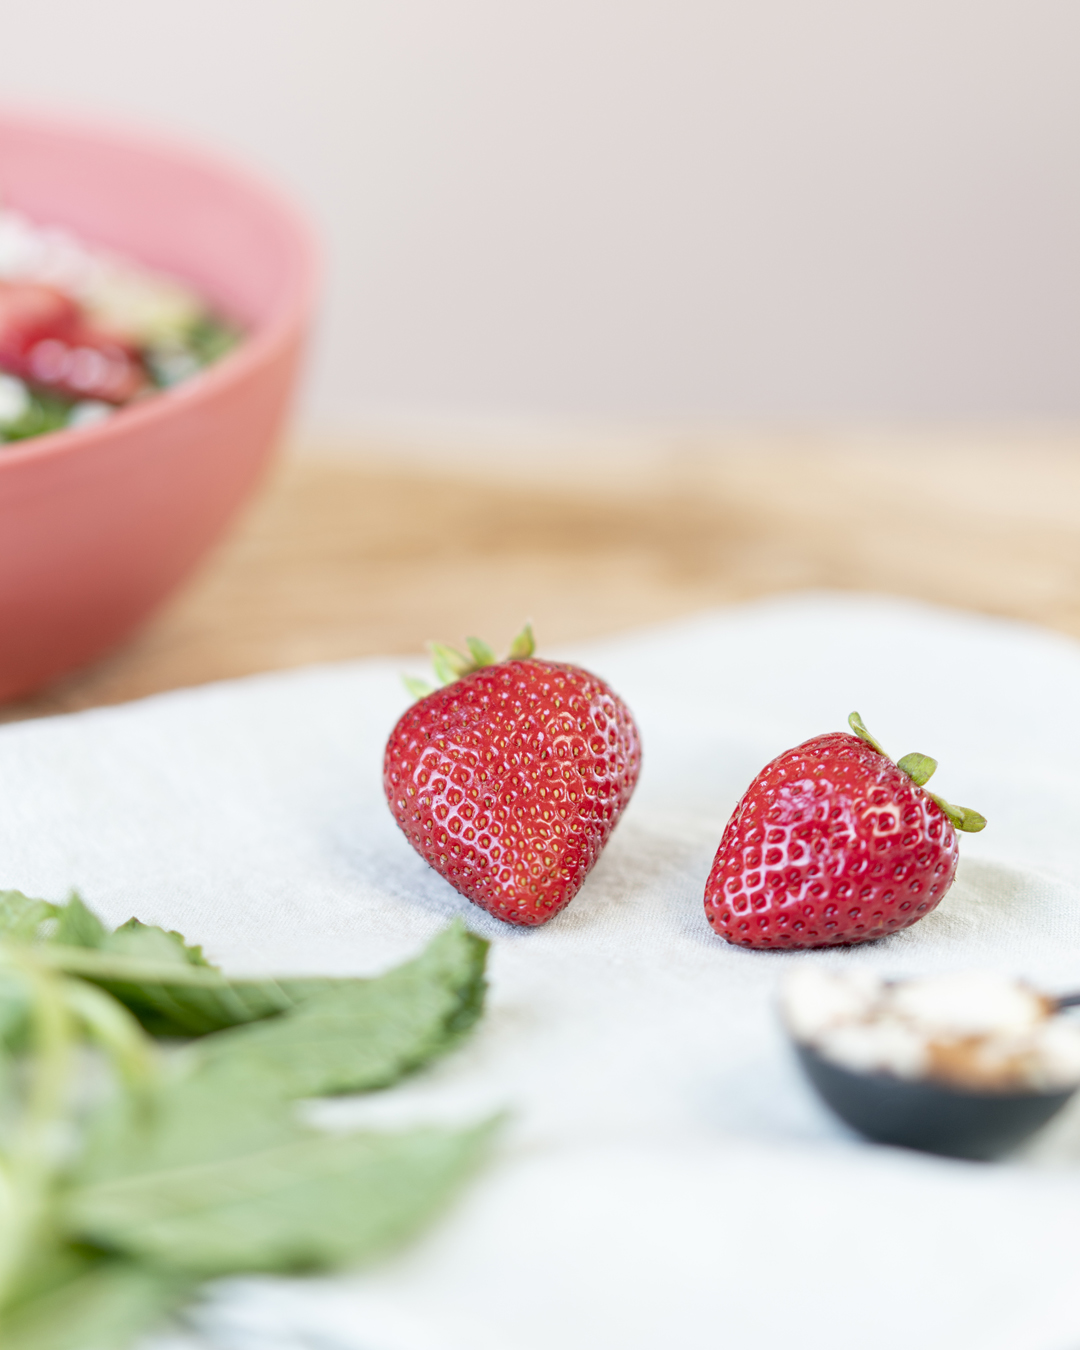 Summer Cucumber and Strawberry Spinach Salad by Knotably Creative House 08.jpg